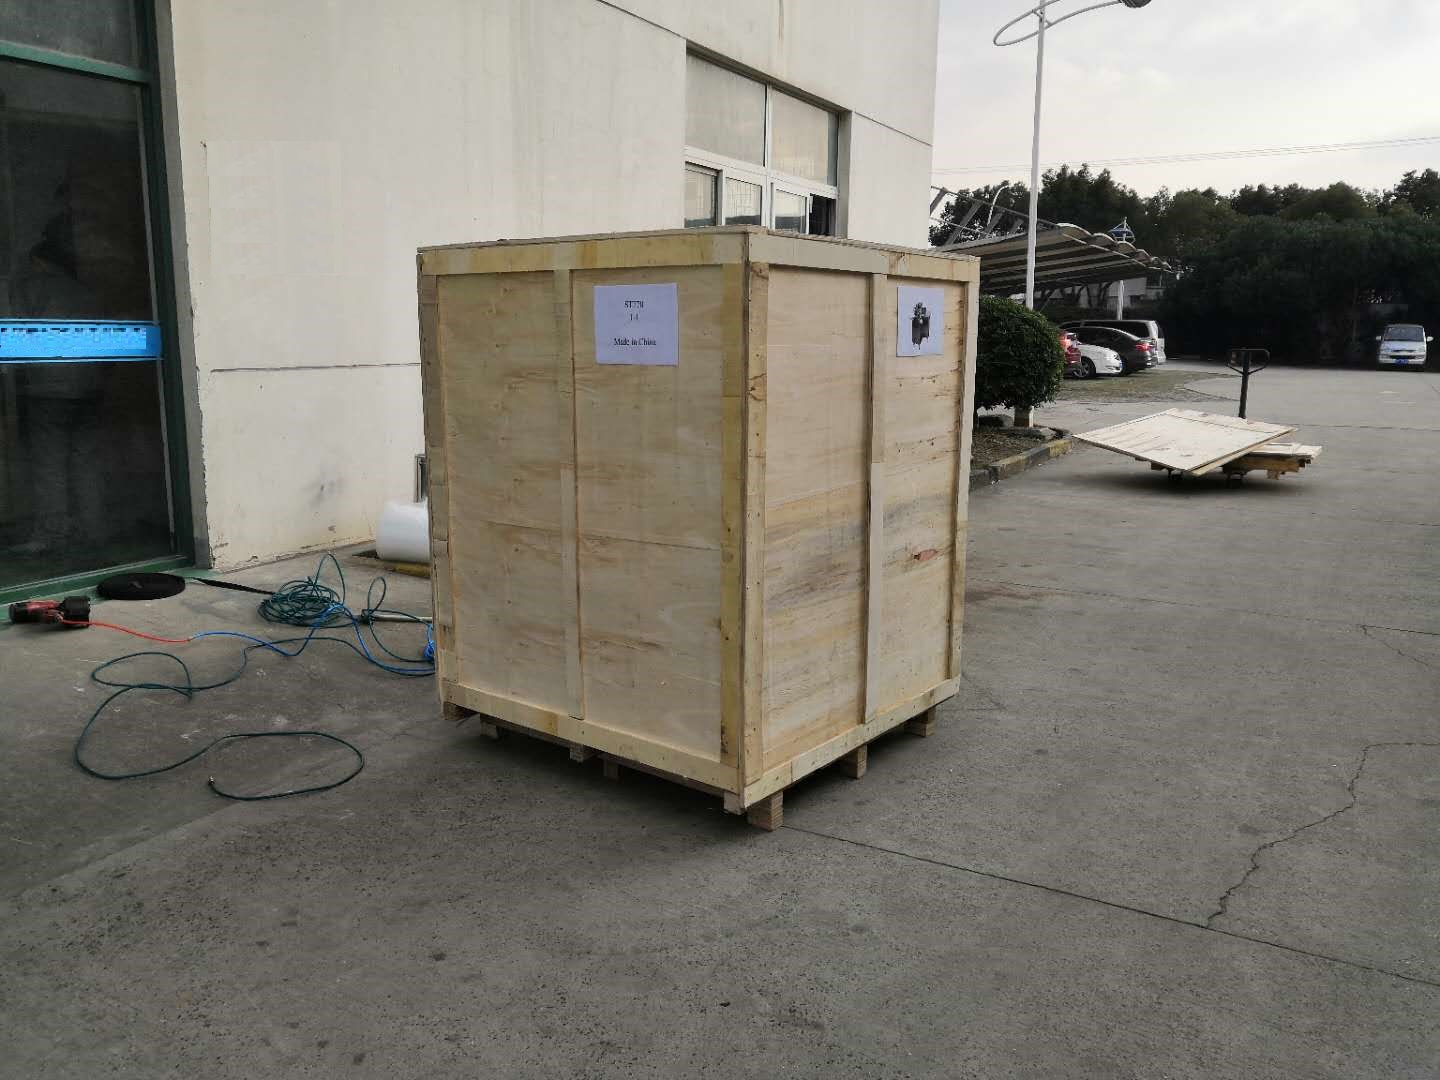 st-770 packing